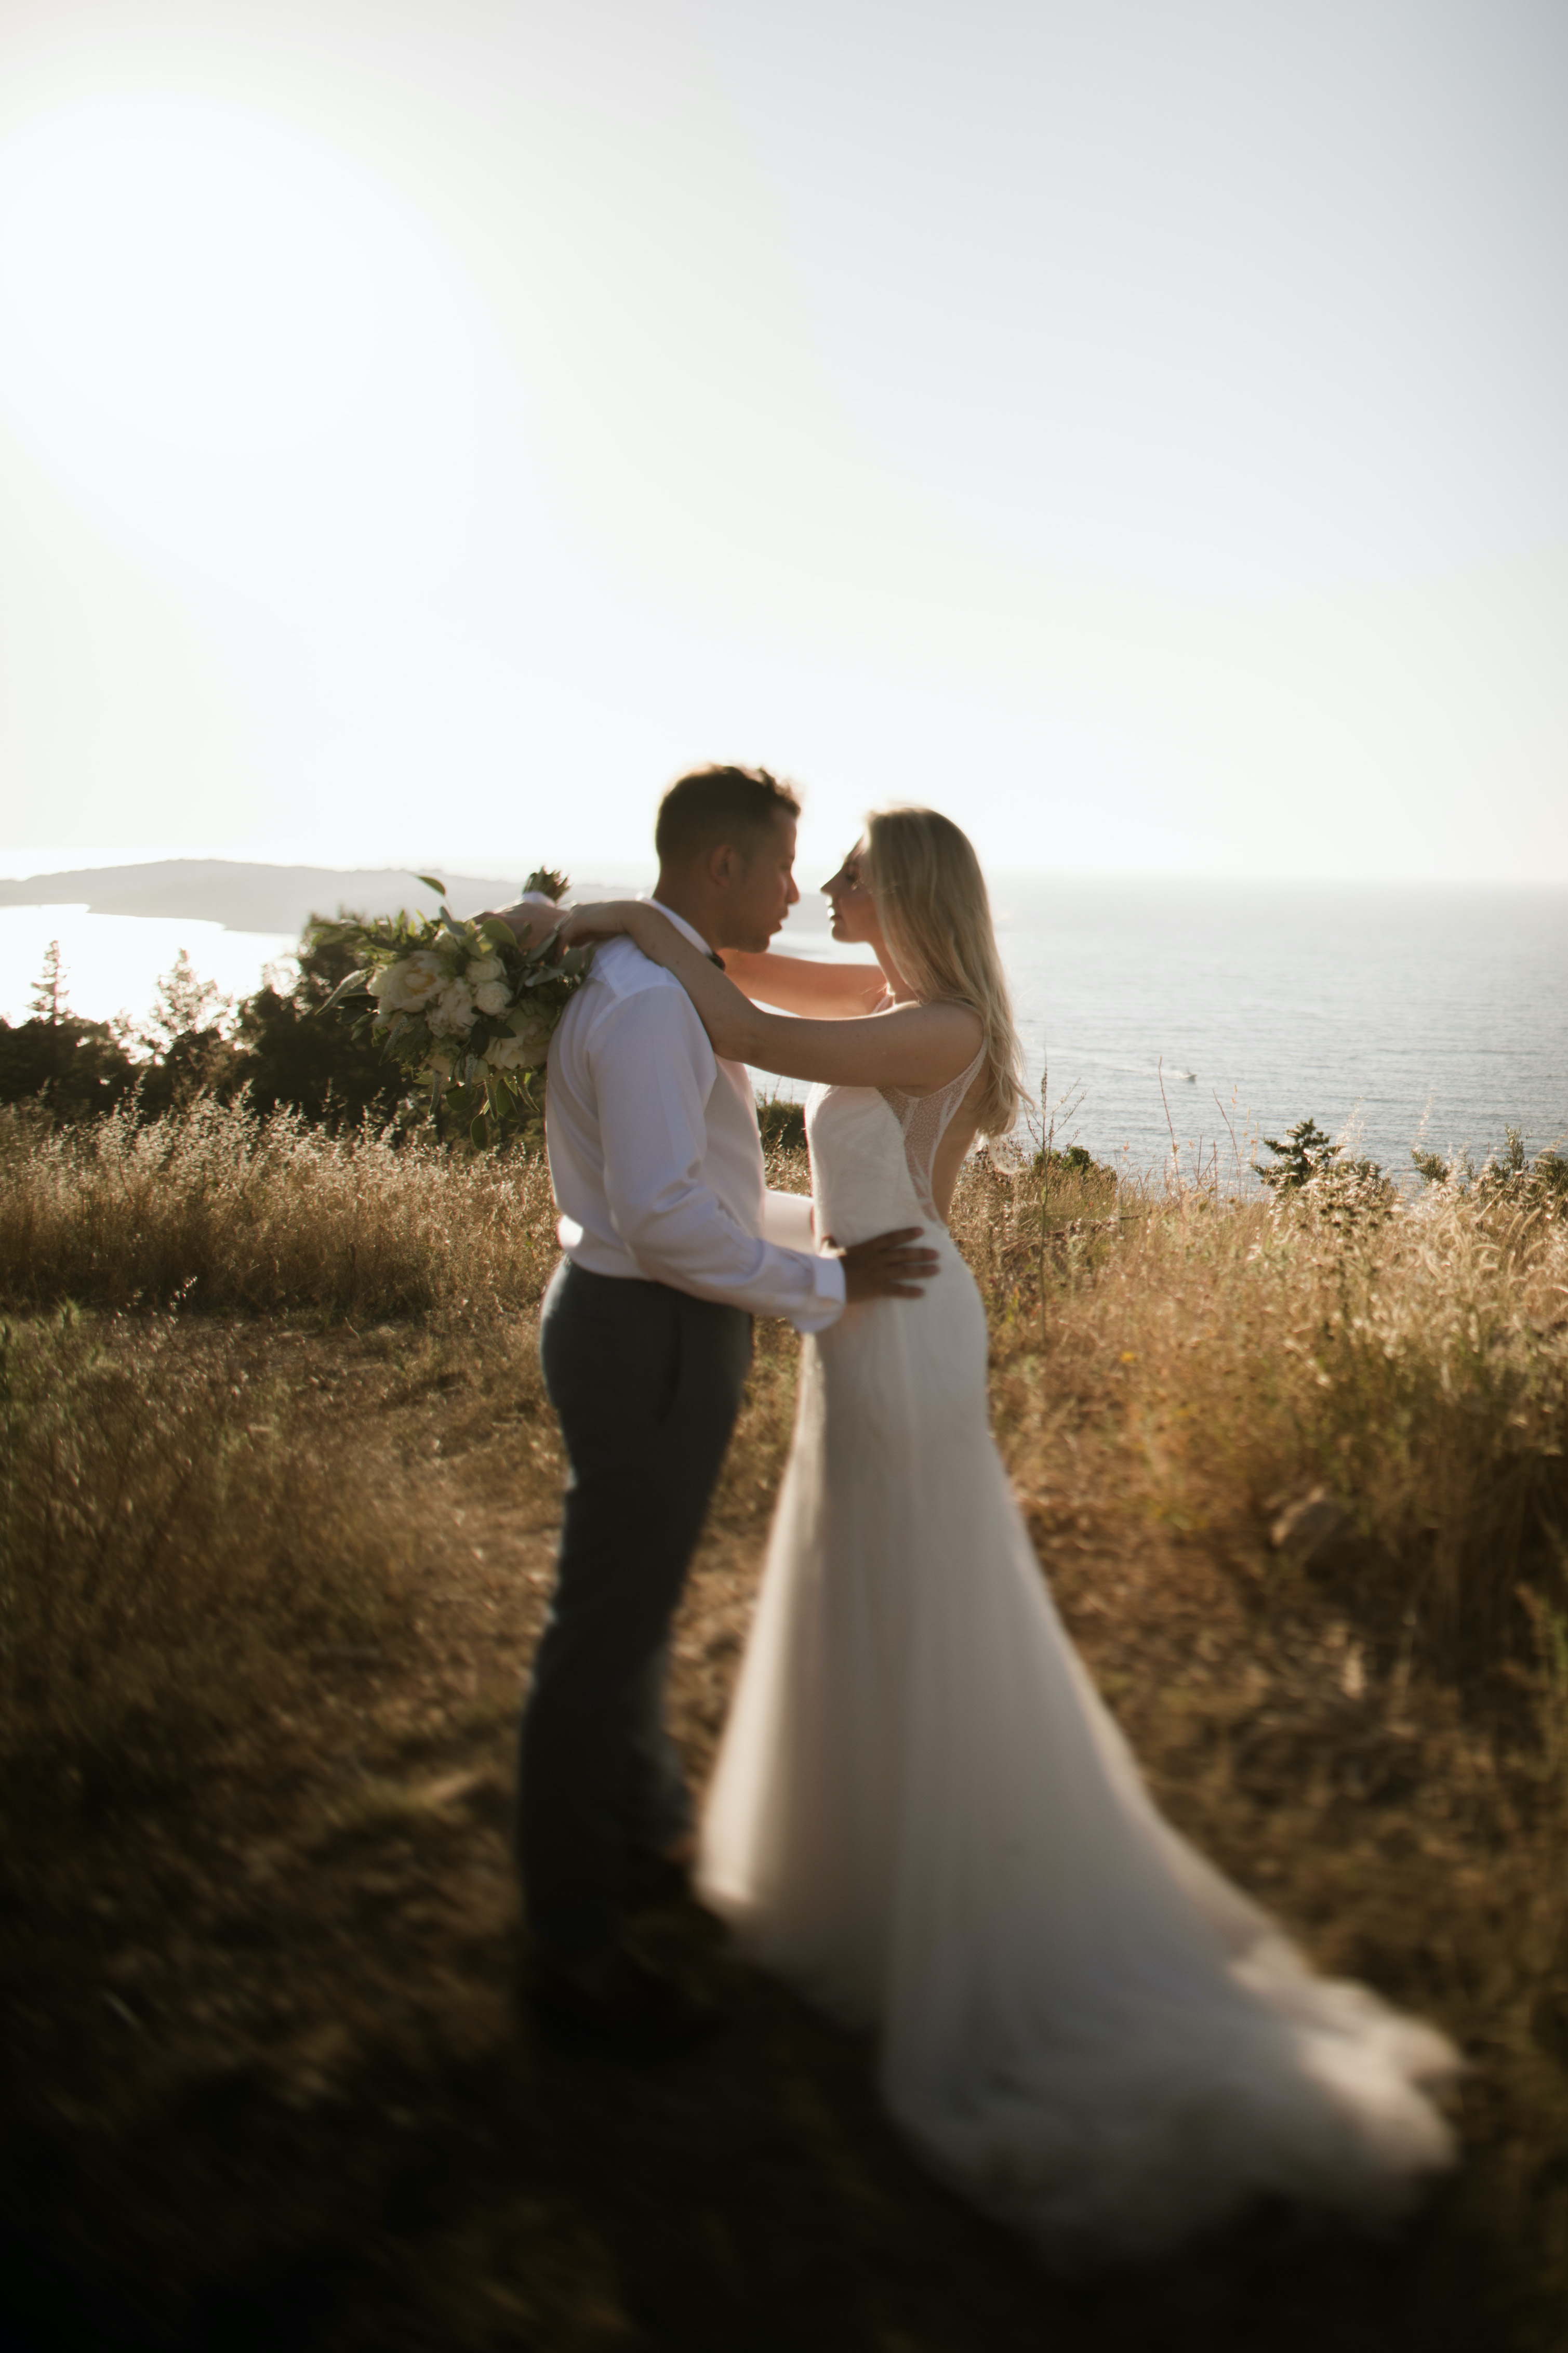 Real wedding in Croatia: Corinna & Ben